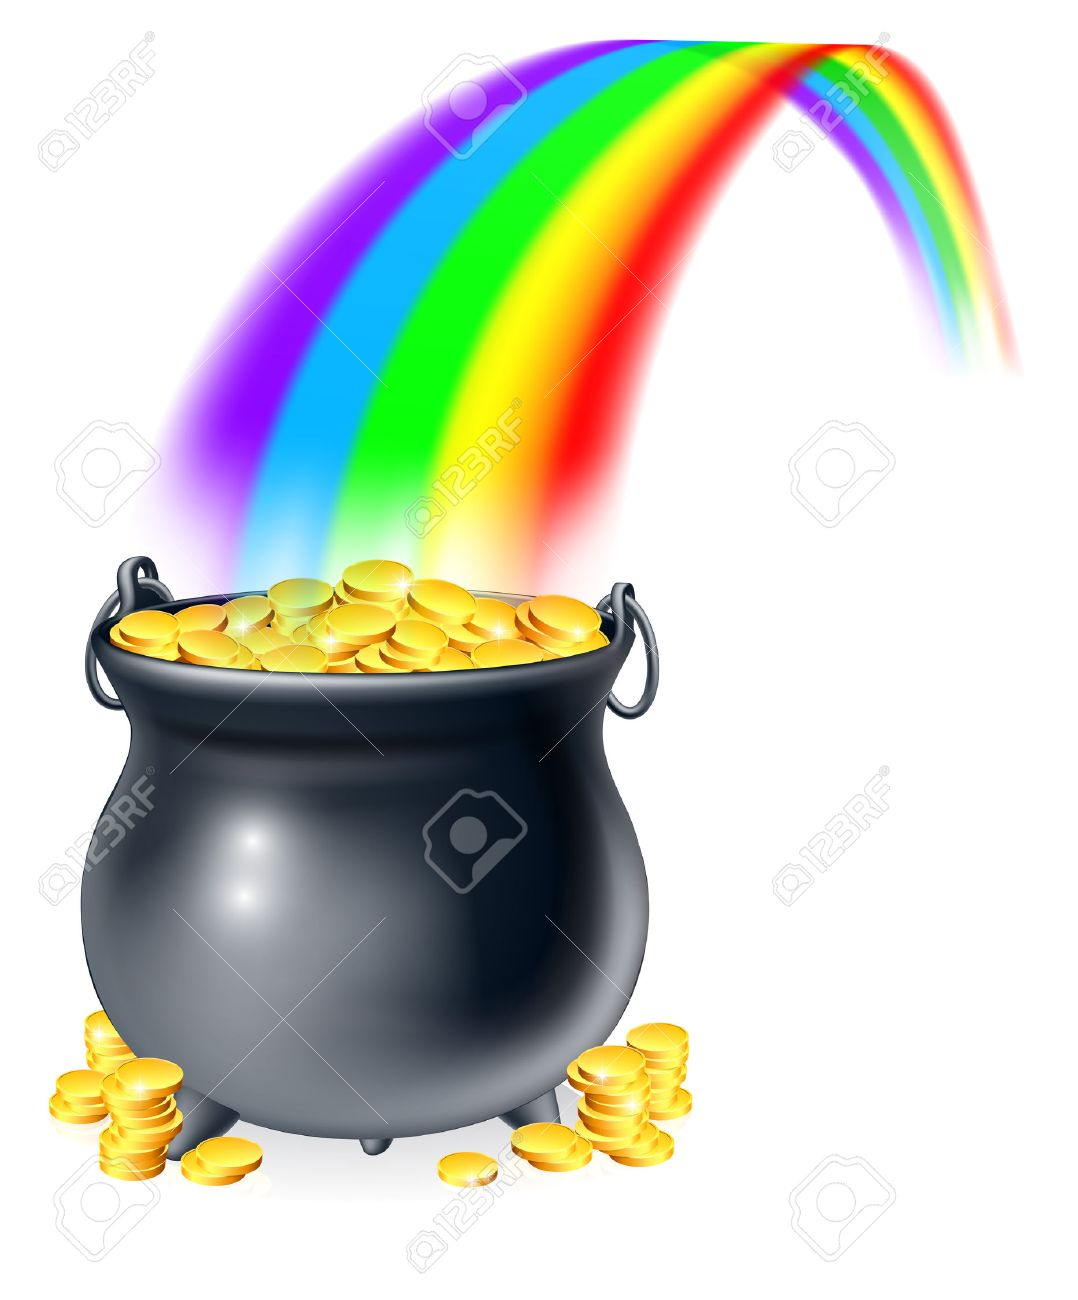 1078x1300 Pot Of Gold Images Amp Stock Pictures. Royalty Free Pot Of Gold